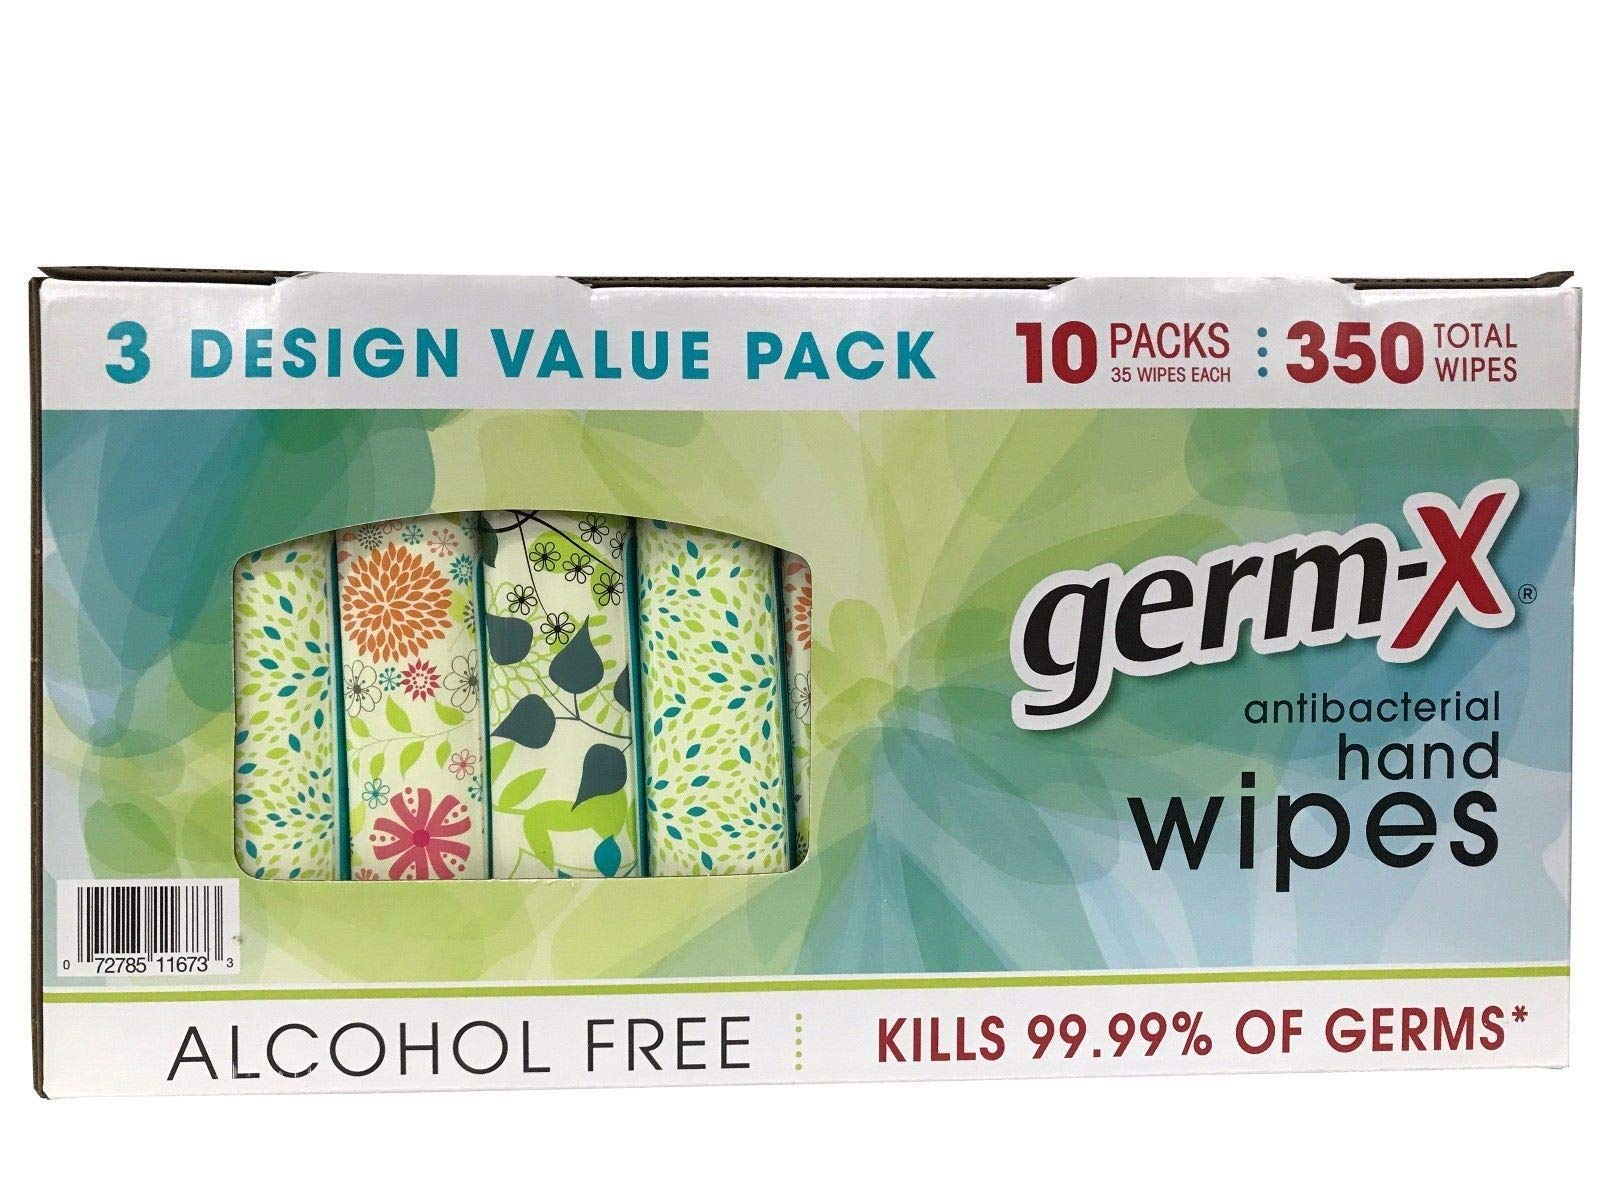 Germ-X Antibacterial Hand Wipes Designer Pack (350 Wipes) by Germ-X (Image #1)